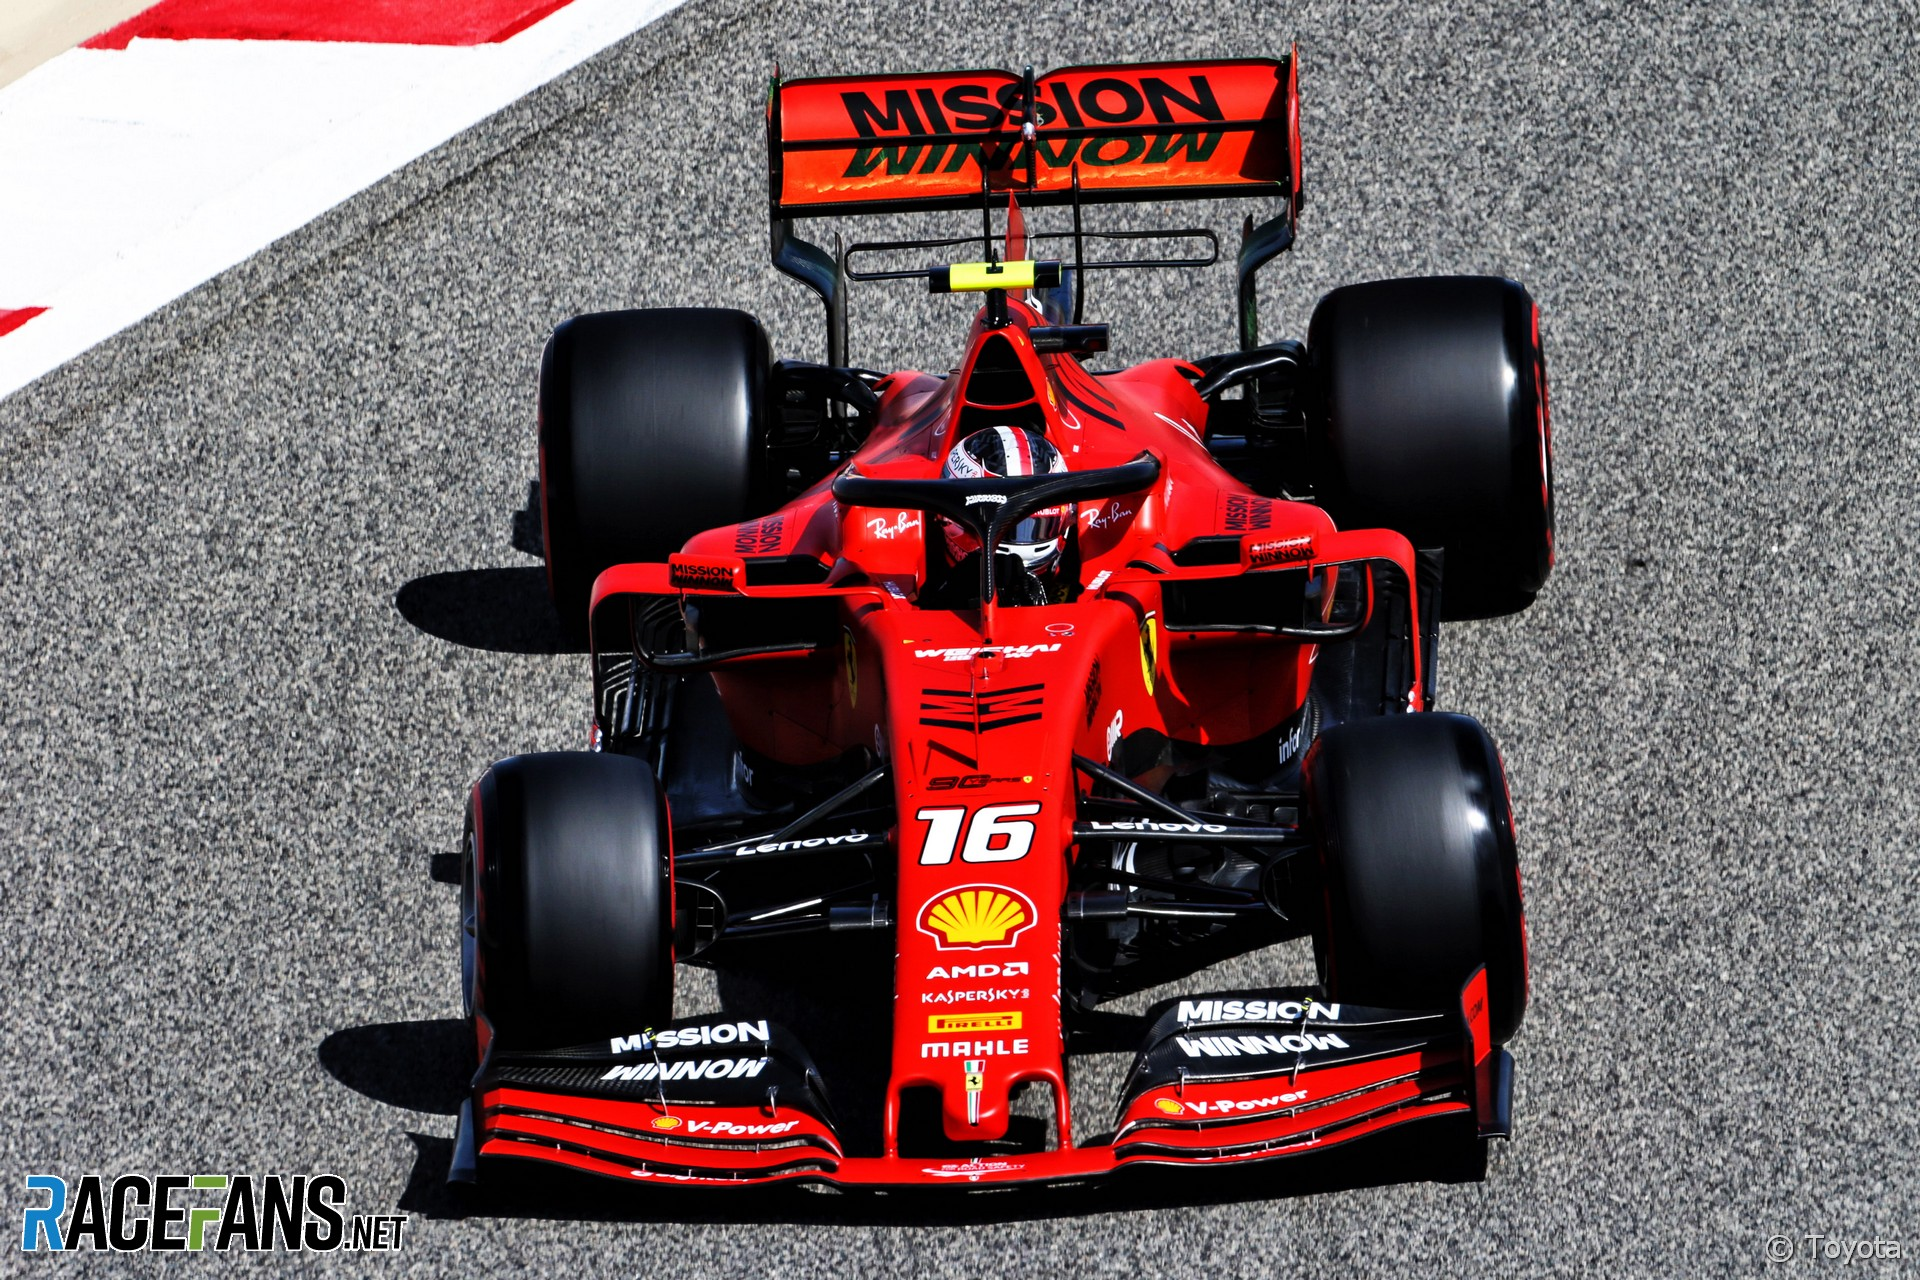 Leclerc leads emphatic Ferrari one-two in first practice | 2019 Bahrain Grand Prix first practice